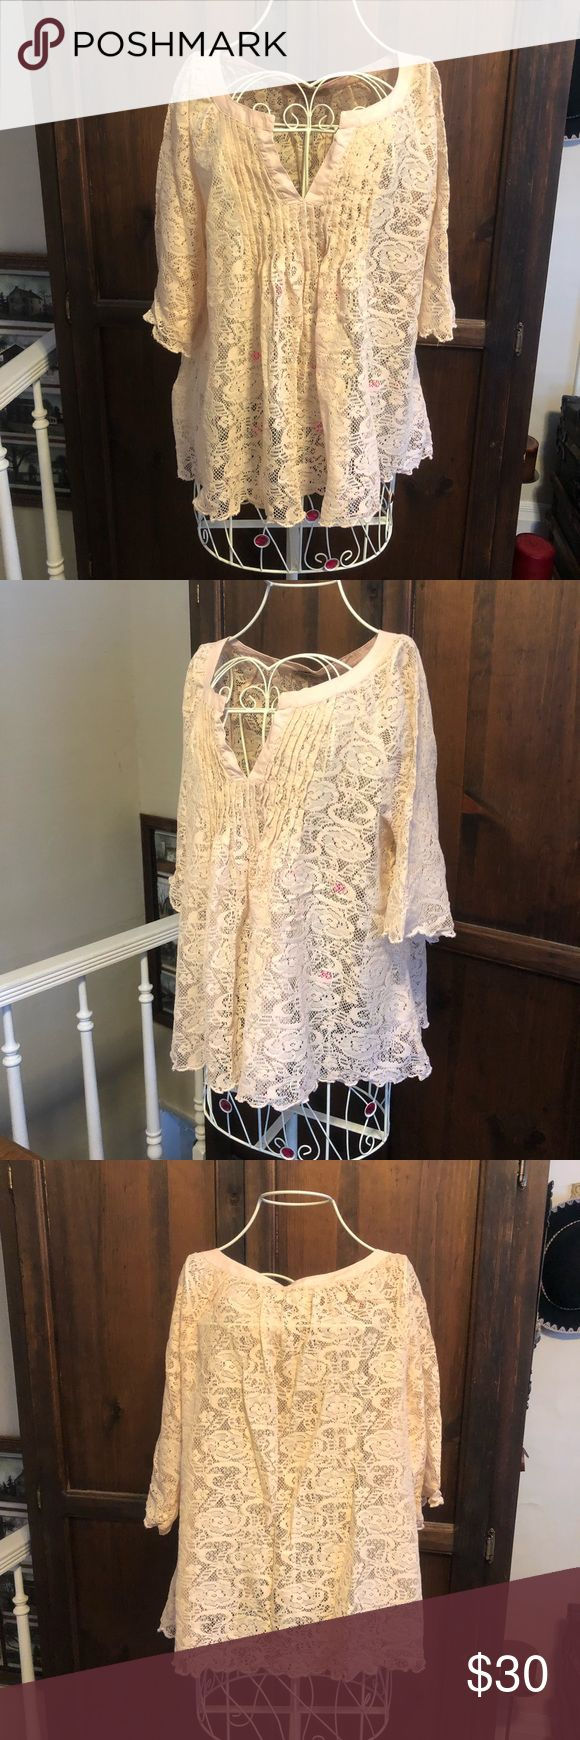 """Antique Style Lace Flowy Top EUC Cute and romantic! Can't help but adore this antique style lace top, size Medium (could easily fit a large also), made by Vintage America. Cream or beige in color, see through, so pair with a nude colored cami or a bright colored one for a fun pop! Super flowy and flattering, measures about 21"""" across the chest laying flat and has some stretch. About 23"""" long from shoulder to hem. Cute v neck cut out at the neckline and 3/4 length flowy sleeves. Vintage…"""